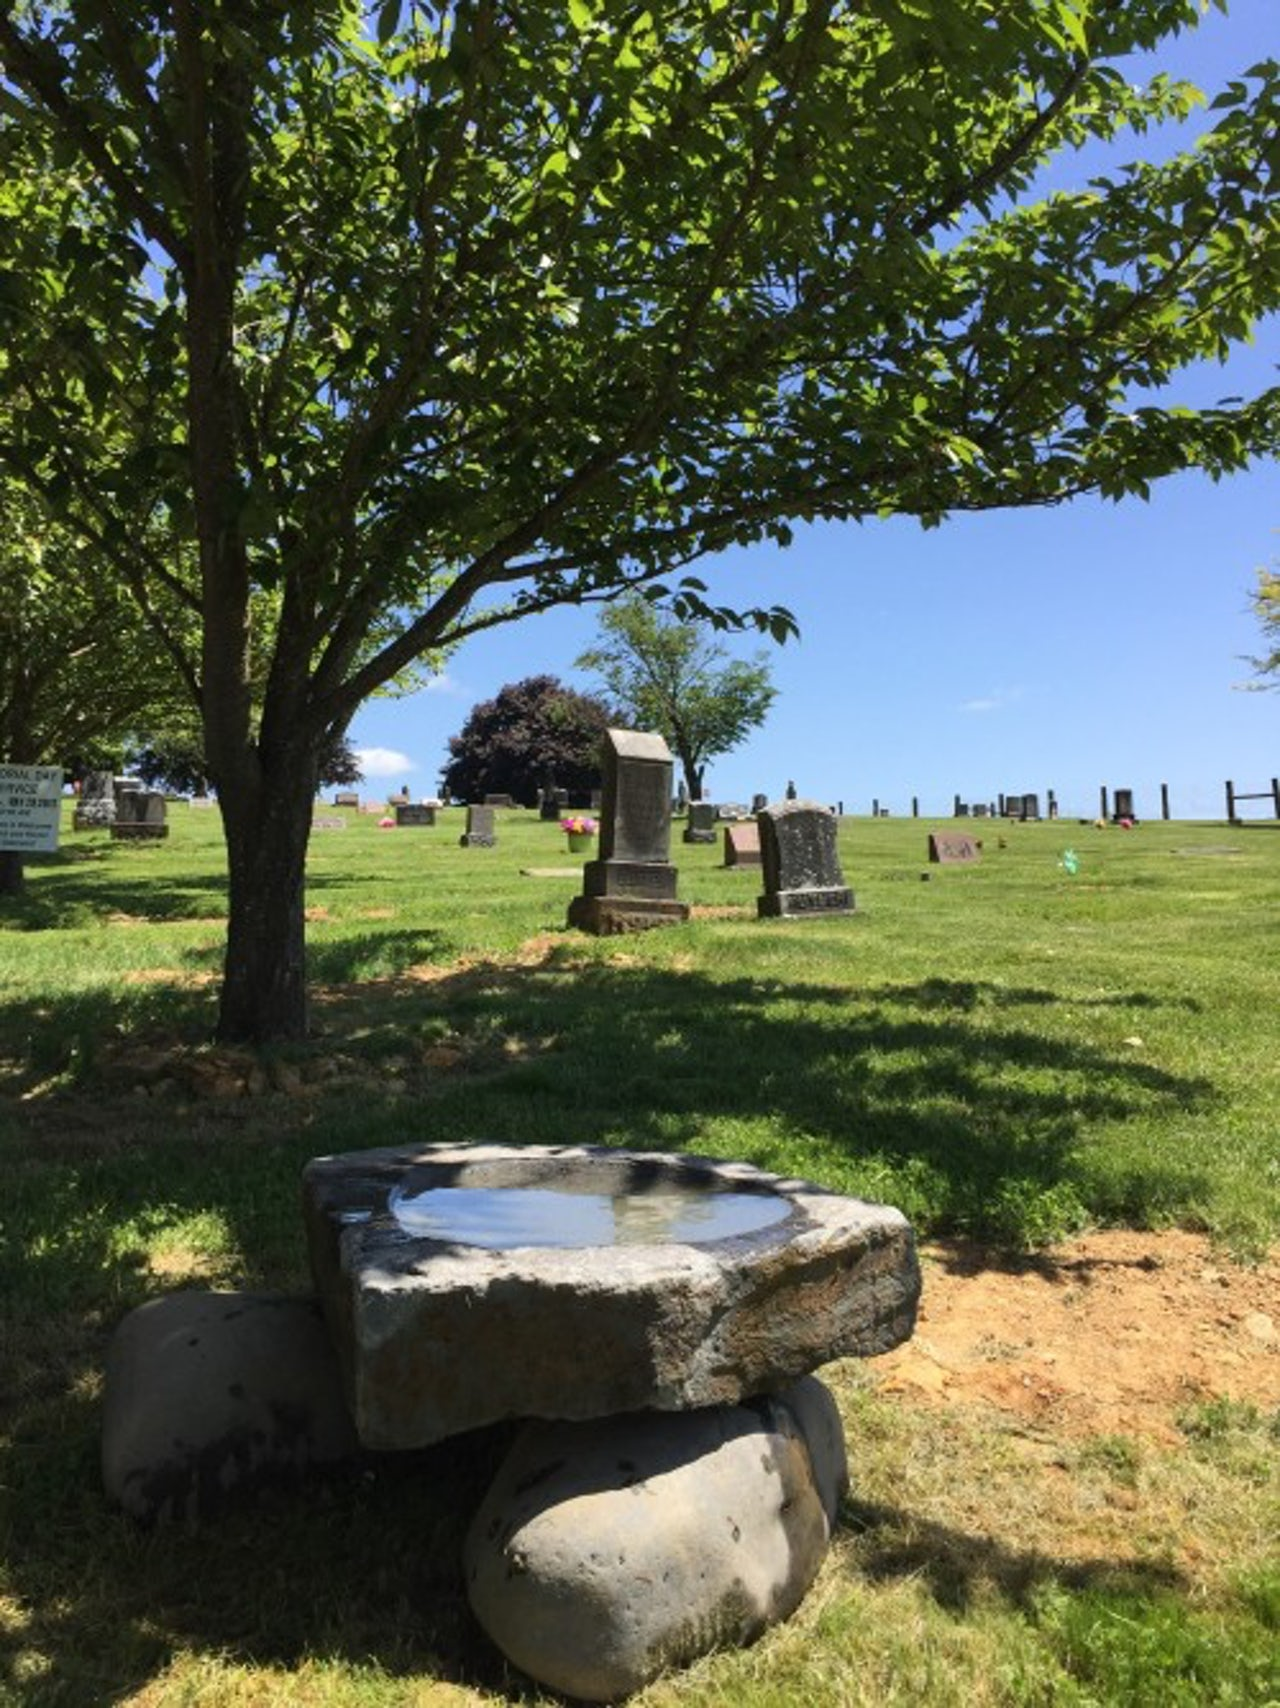 Rest Lawn Memorial Park in Oregon accepts natural burials anywhere on its grounds, keeping in tradition with the pioneers who were buried there more than a century ago.